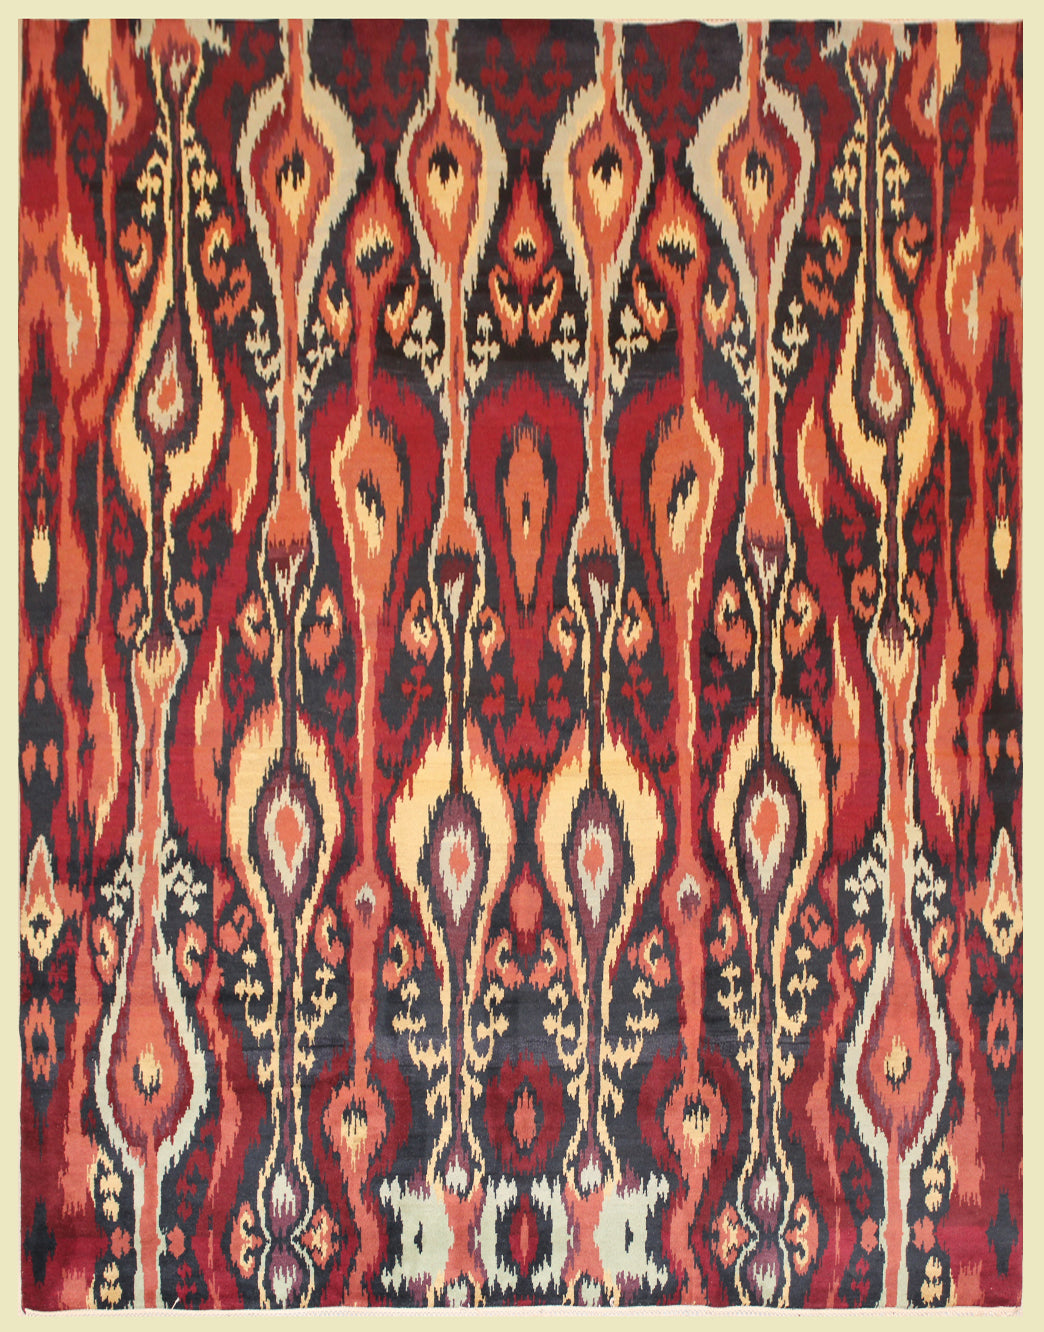 8 feet by 10 feet red Ikat design rug.